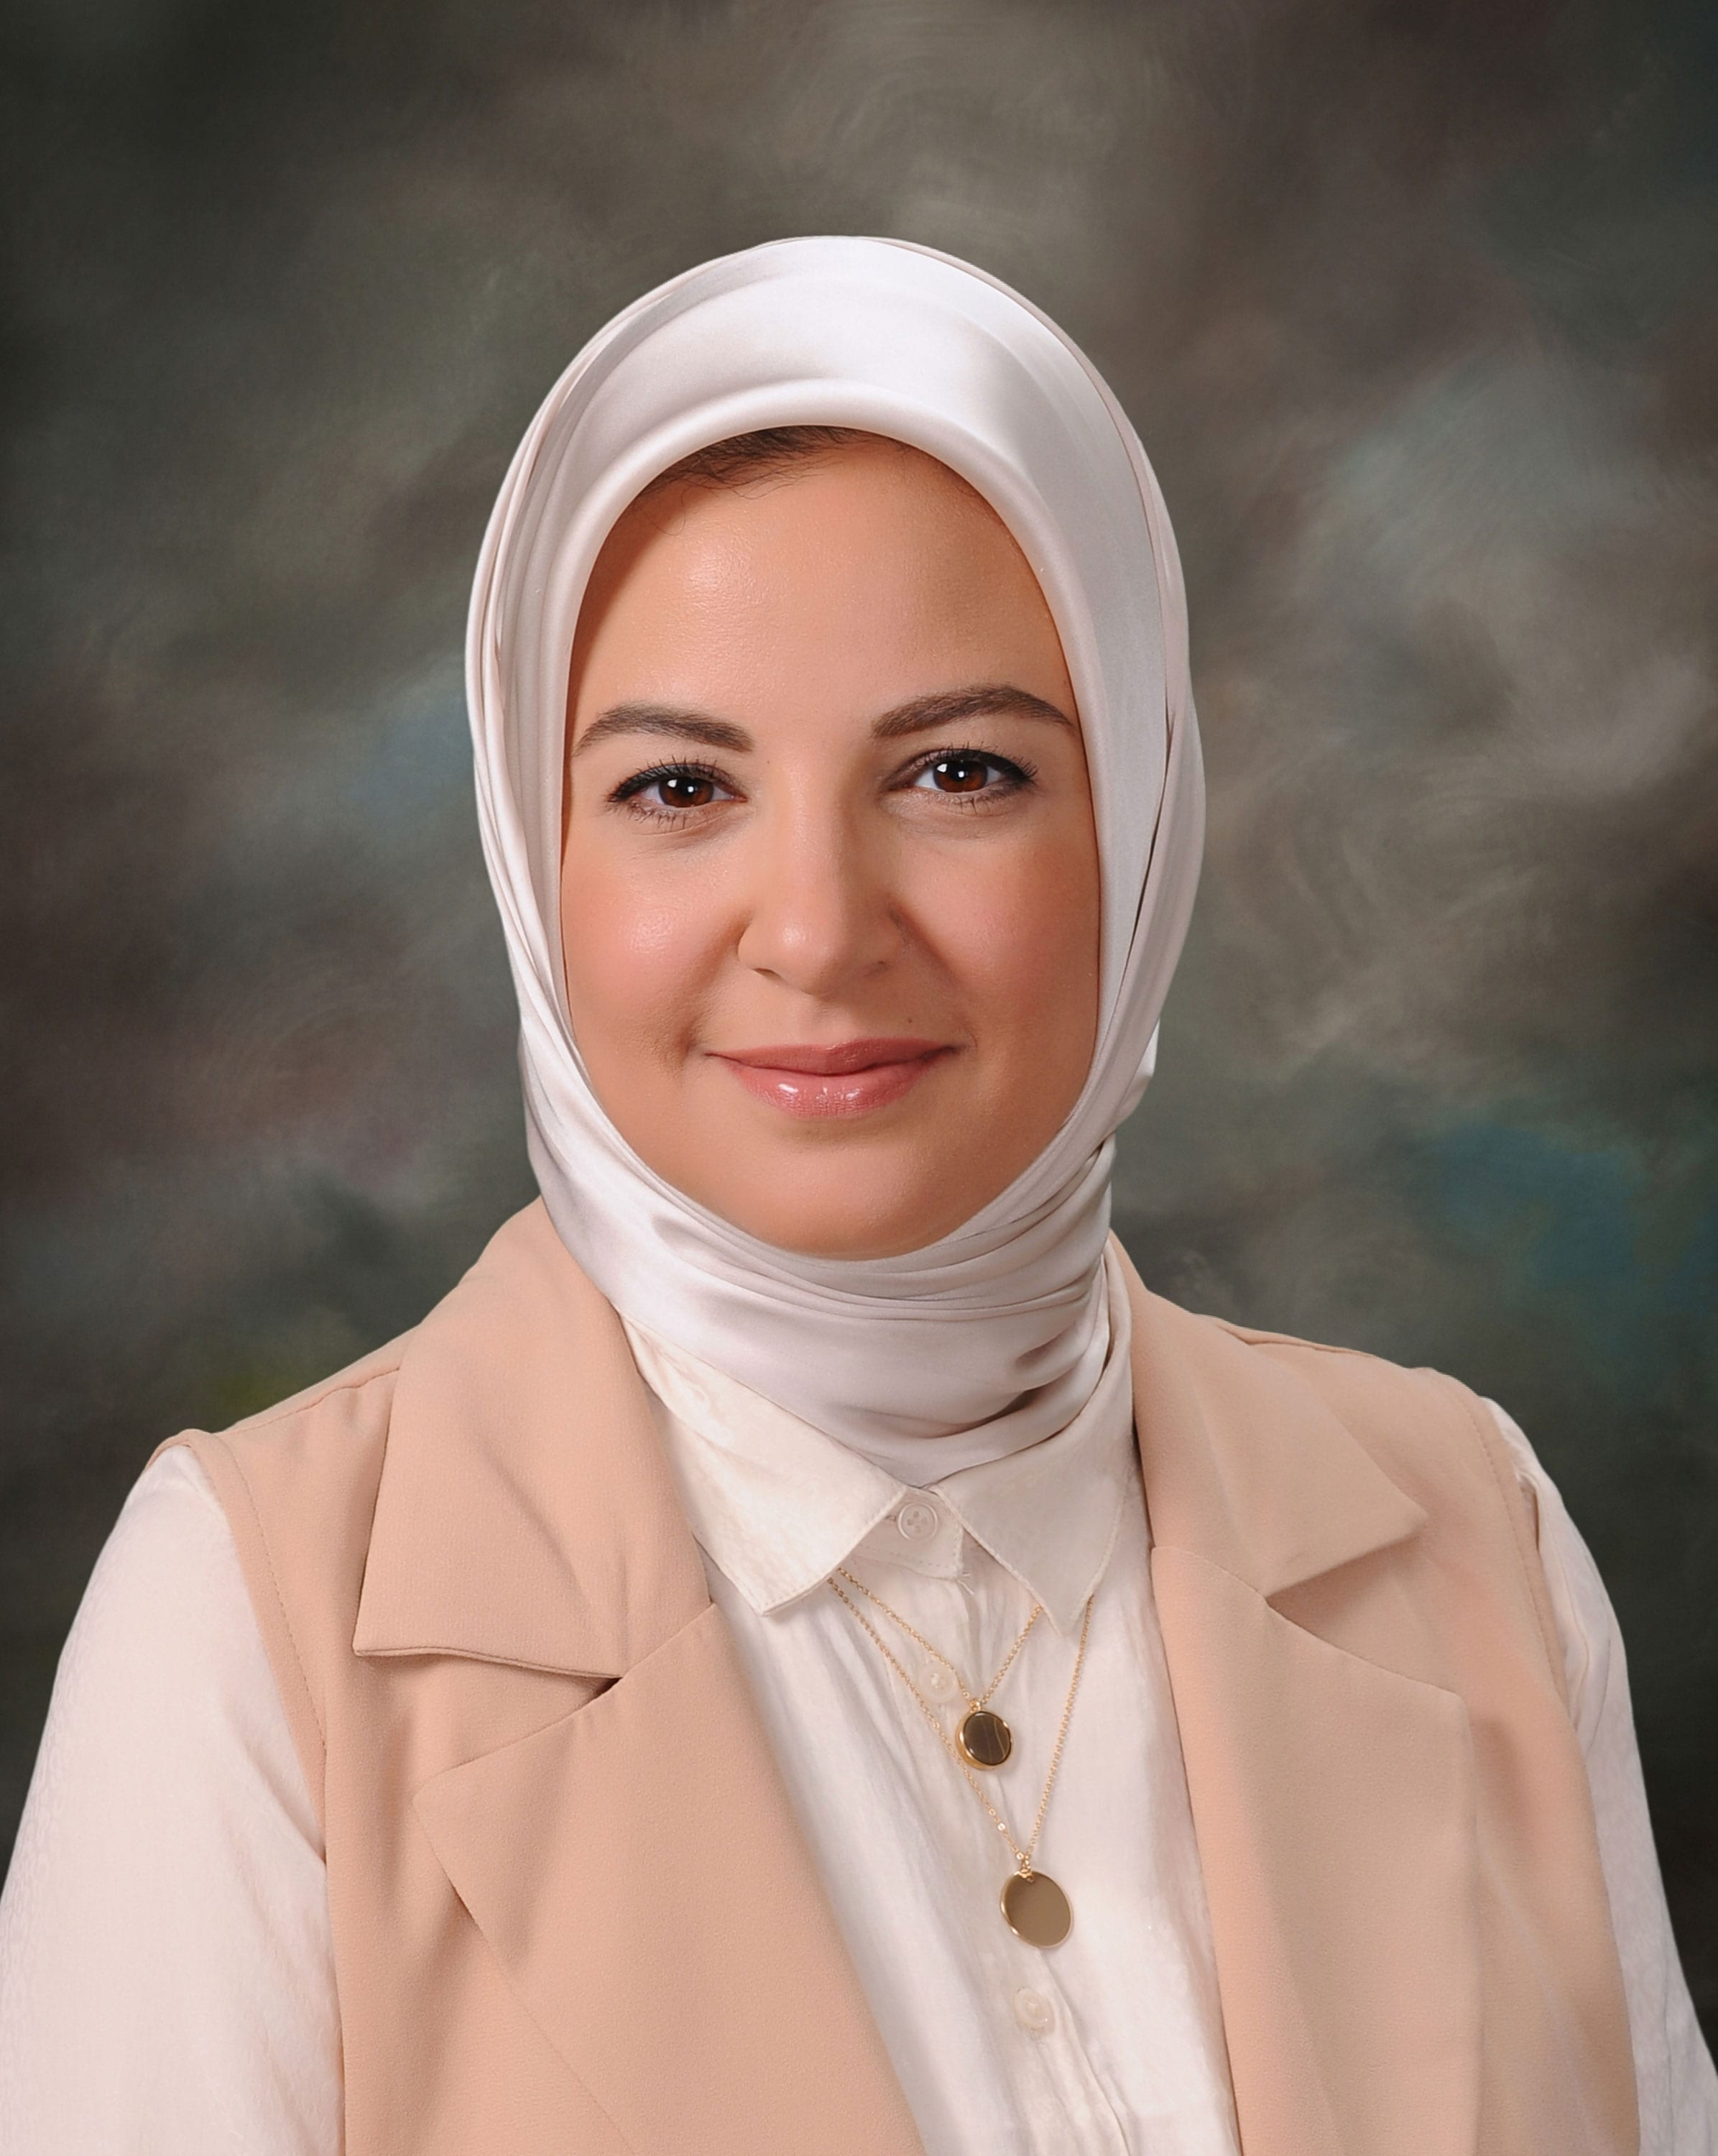 Dr. Abdelwahab Family Practice